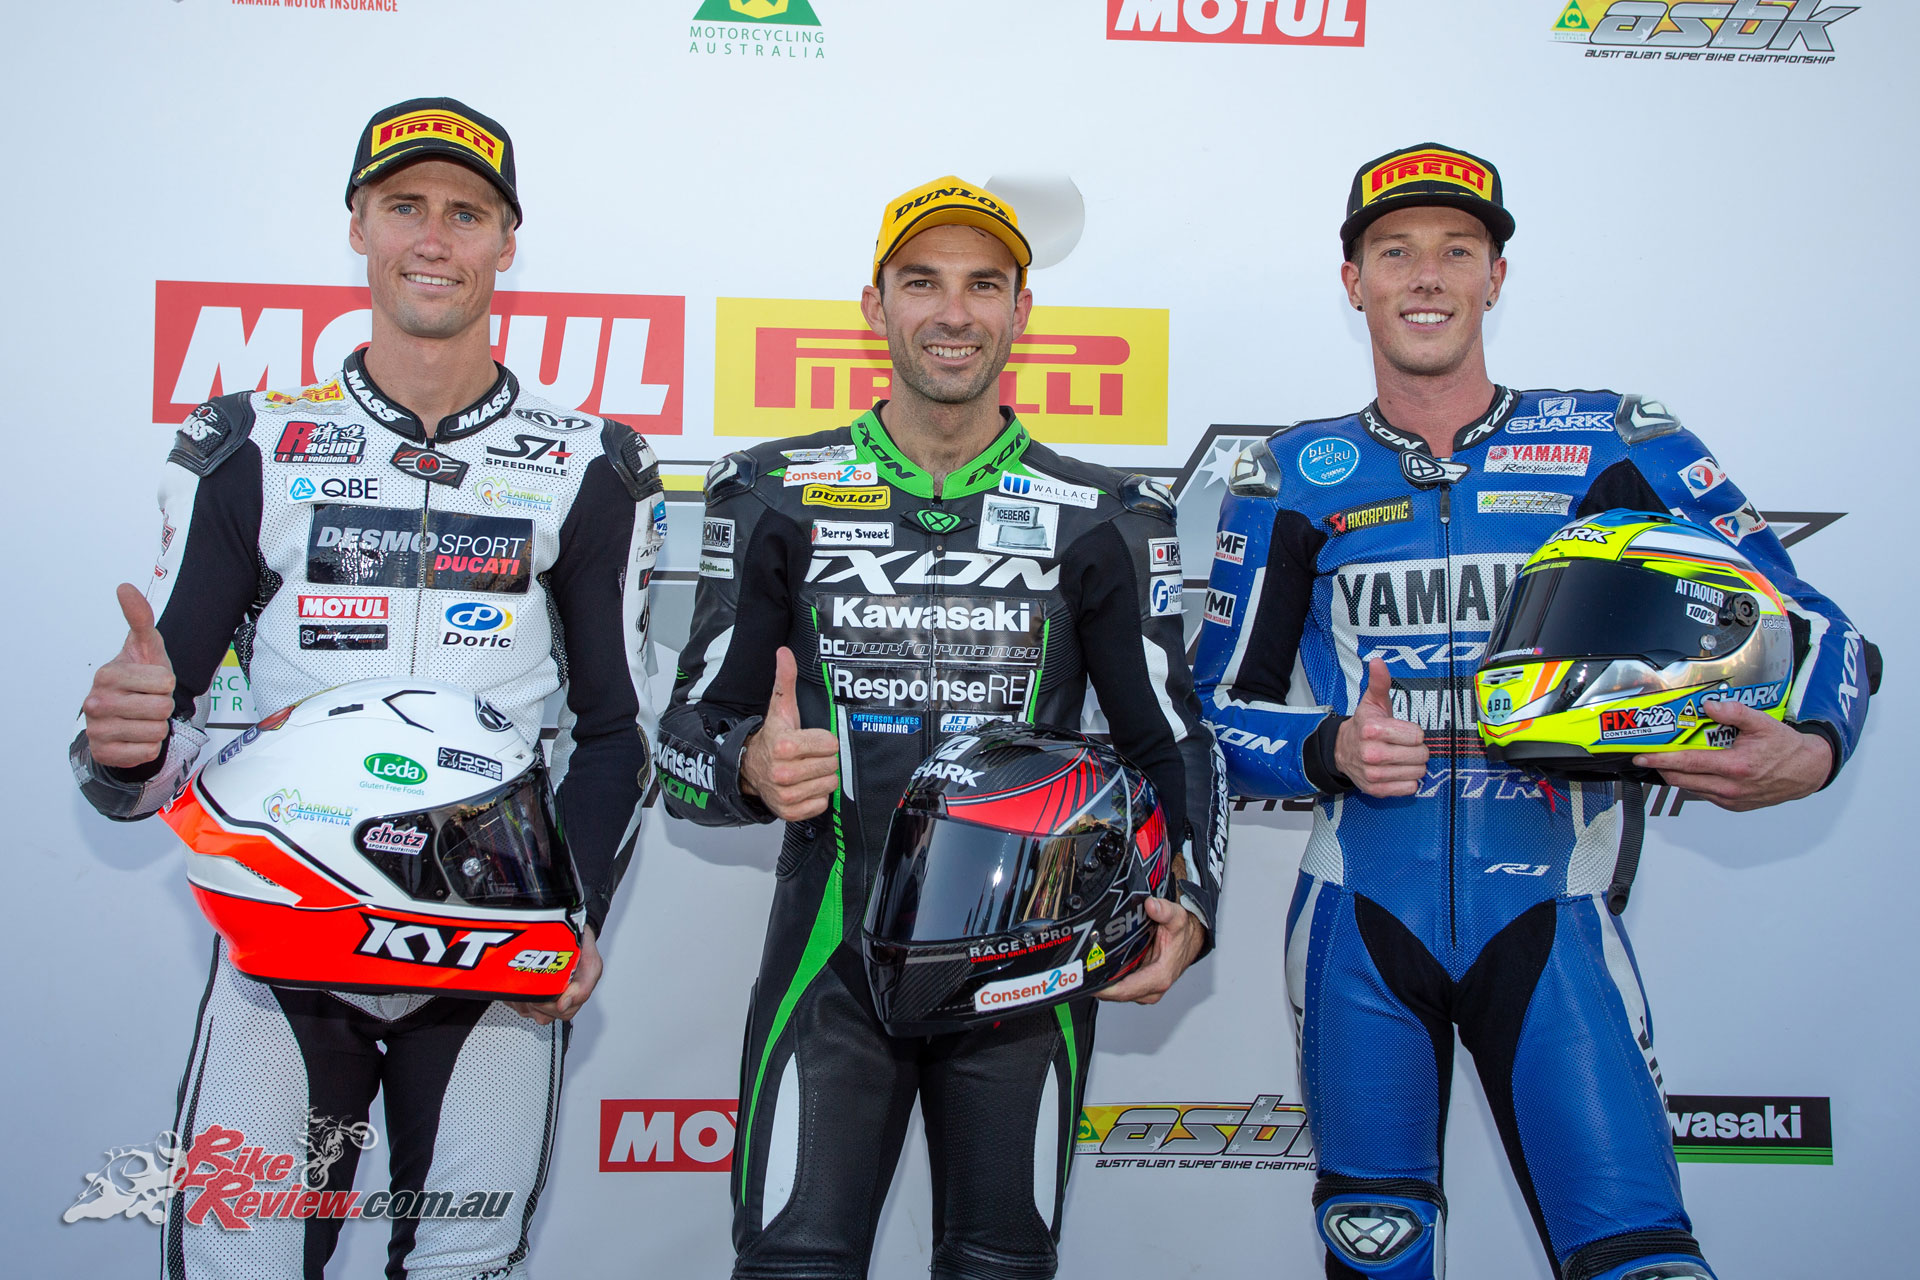 Kawasaki Superbike Race 1 Podium - Image by TBG Sport